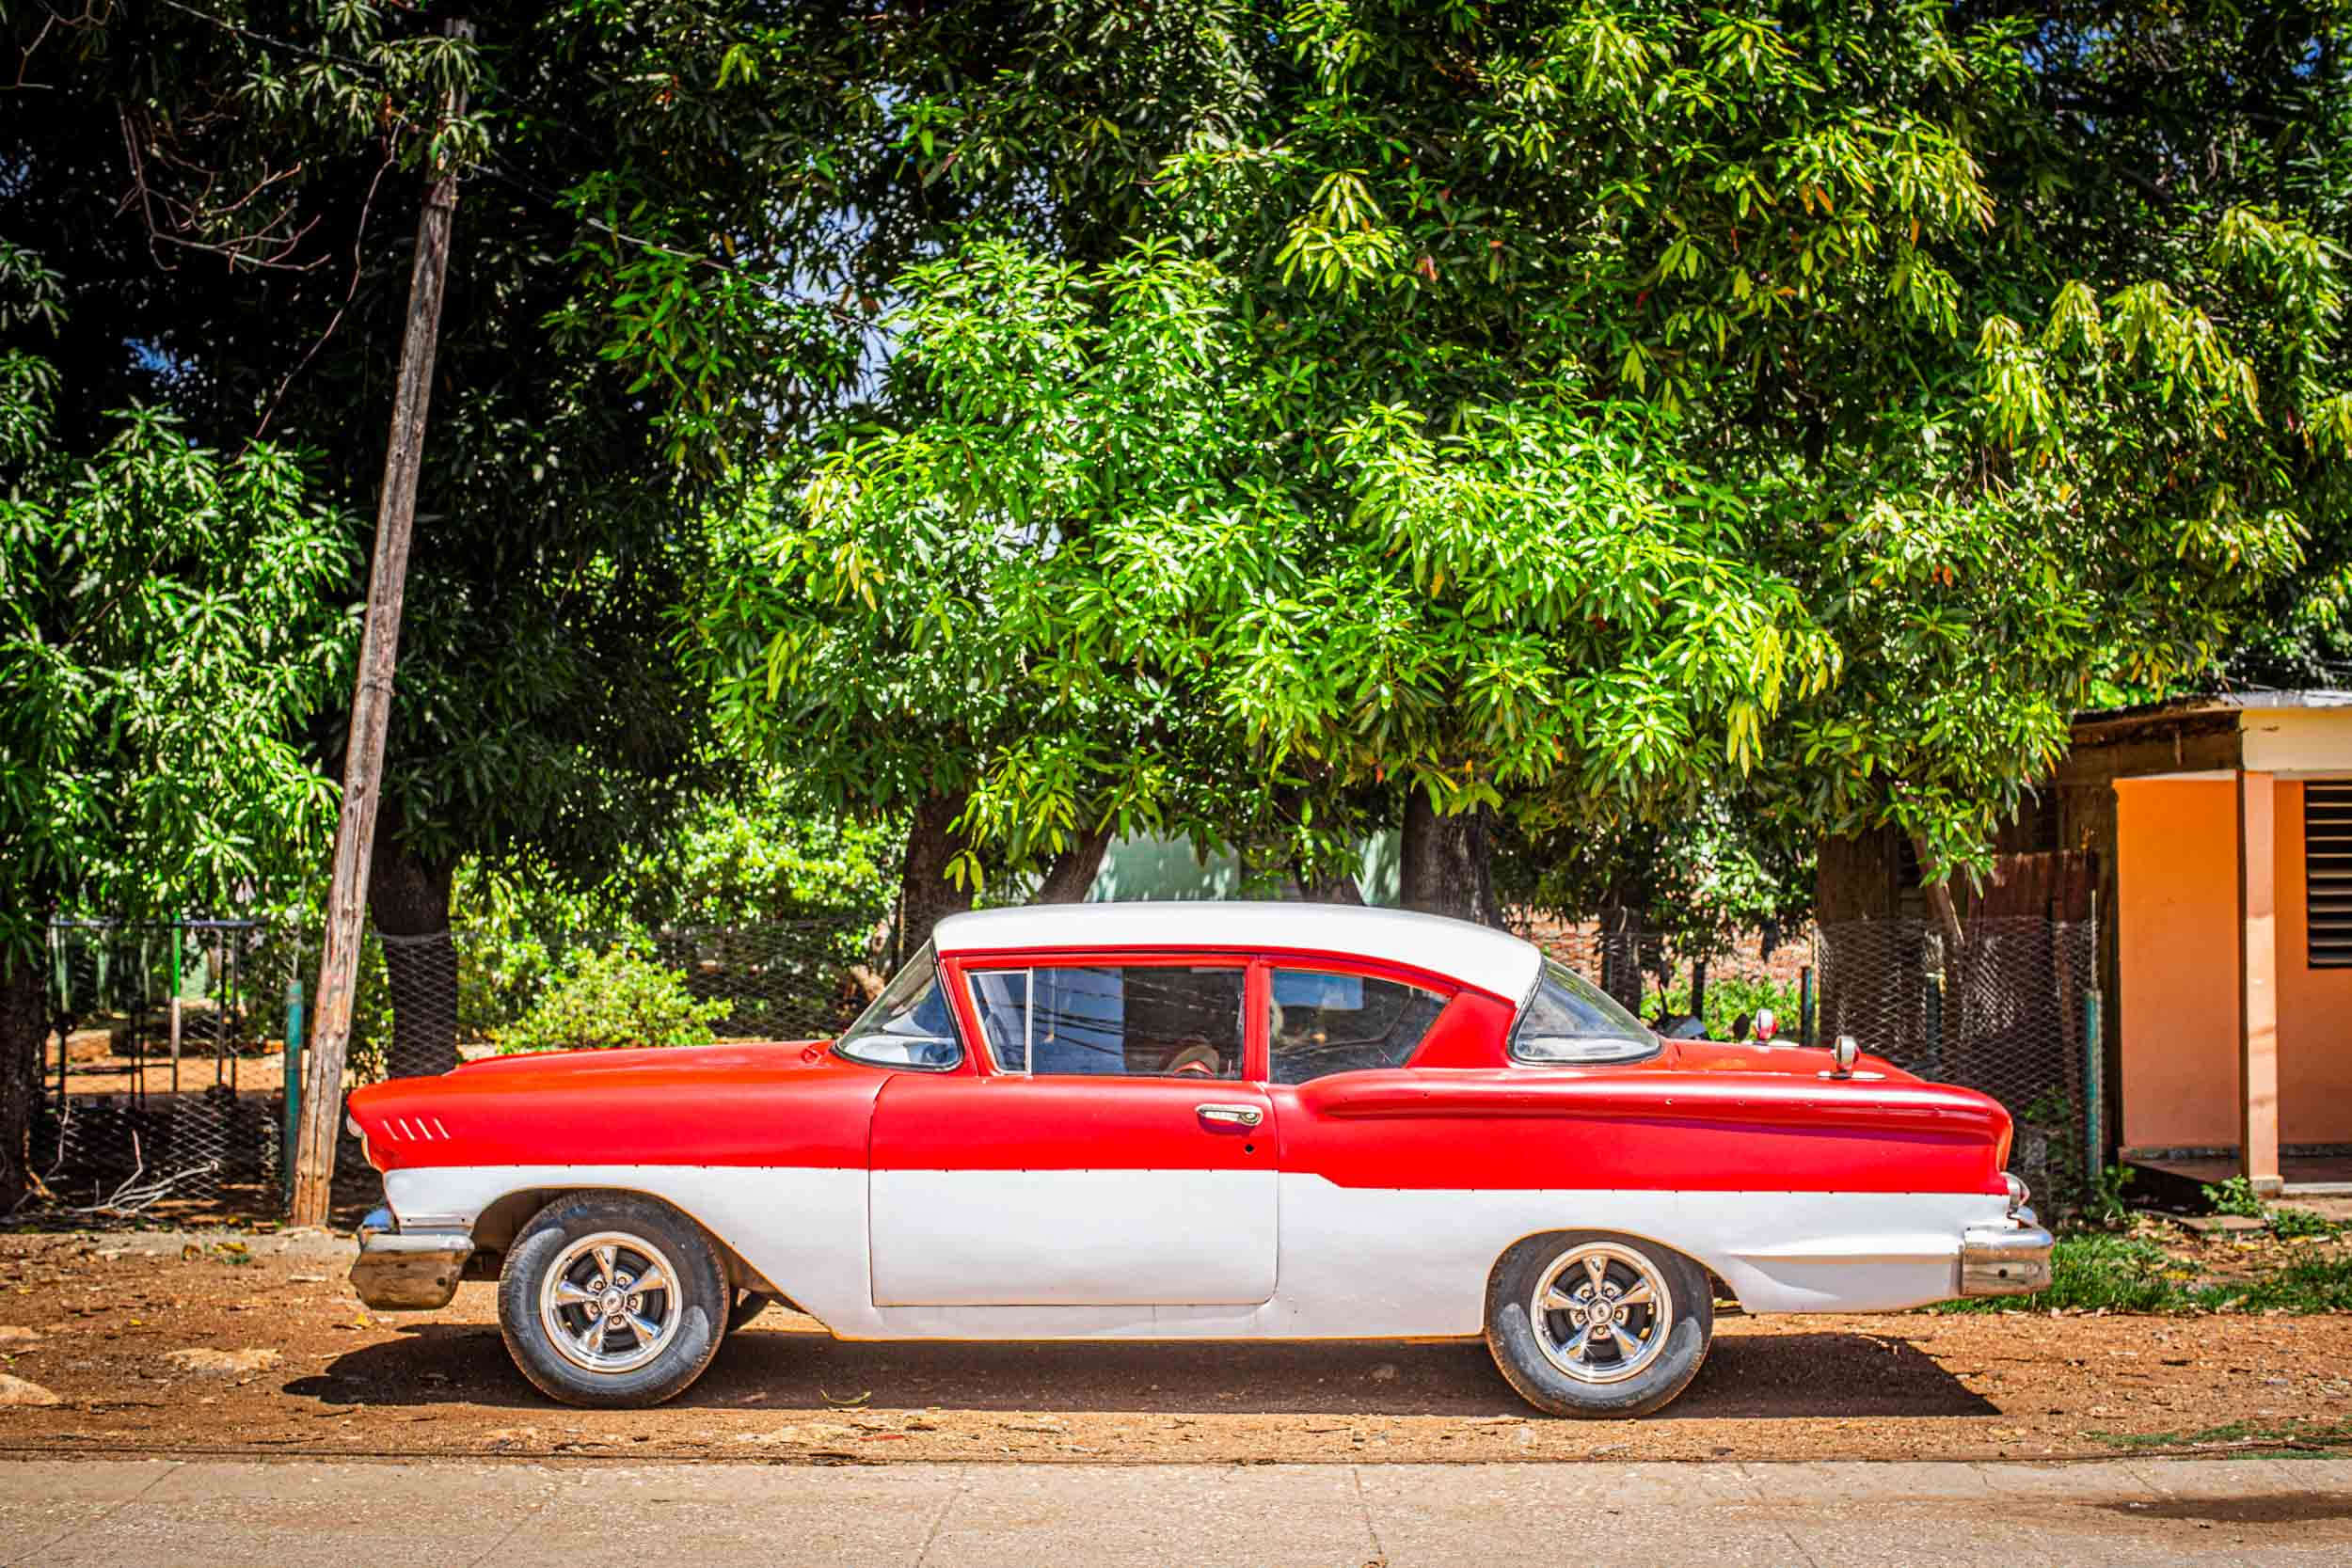 1957/58 Chevrolet Bel Air